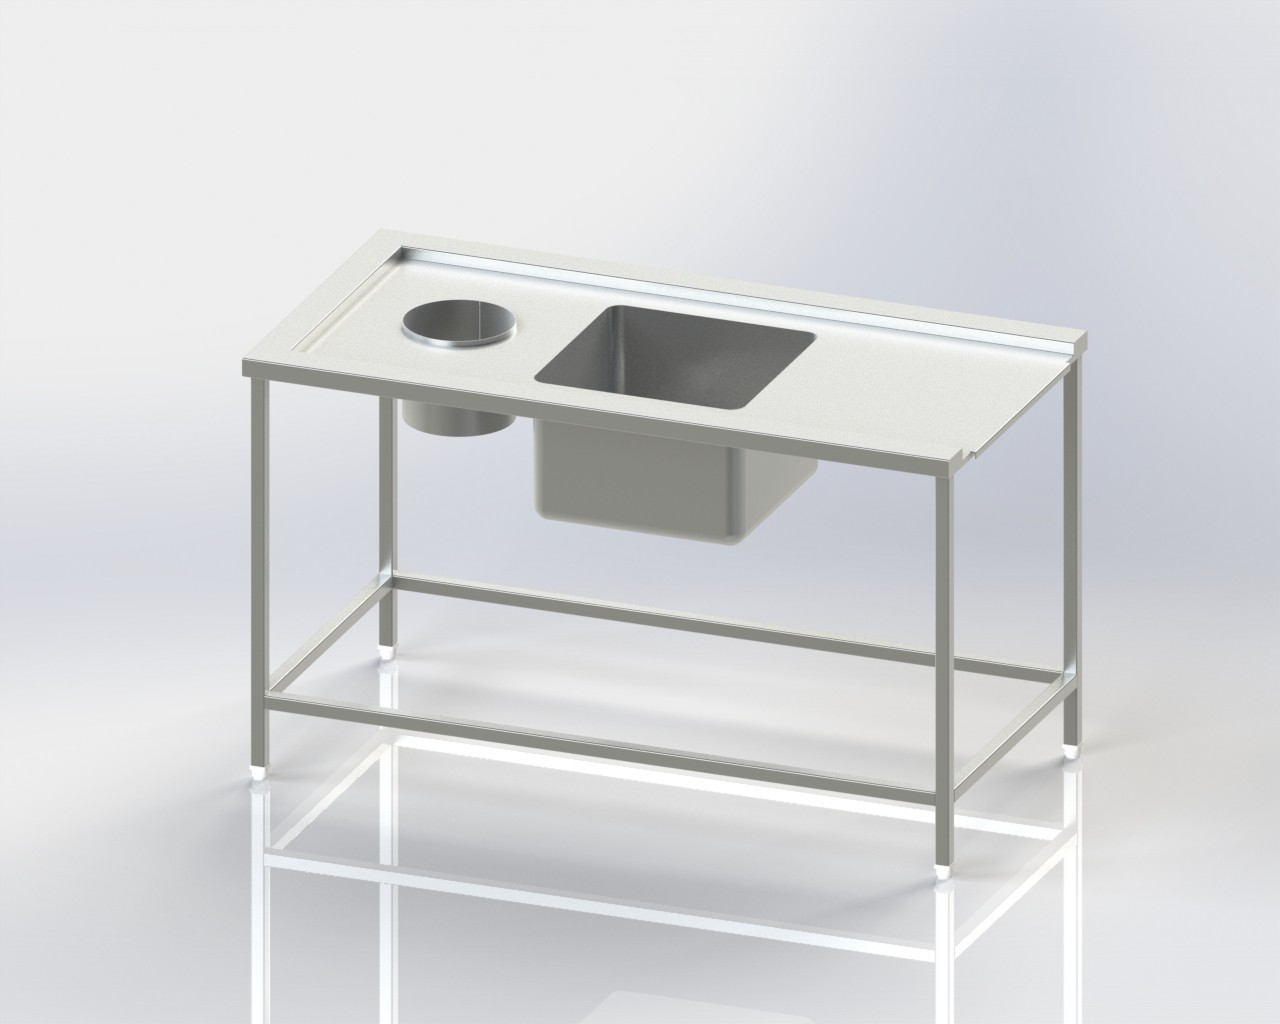 Single Sink-Scrapping Hole-Dishwasher Inlet Table